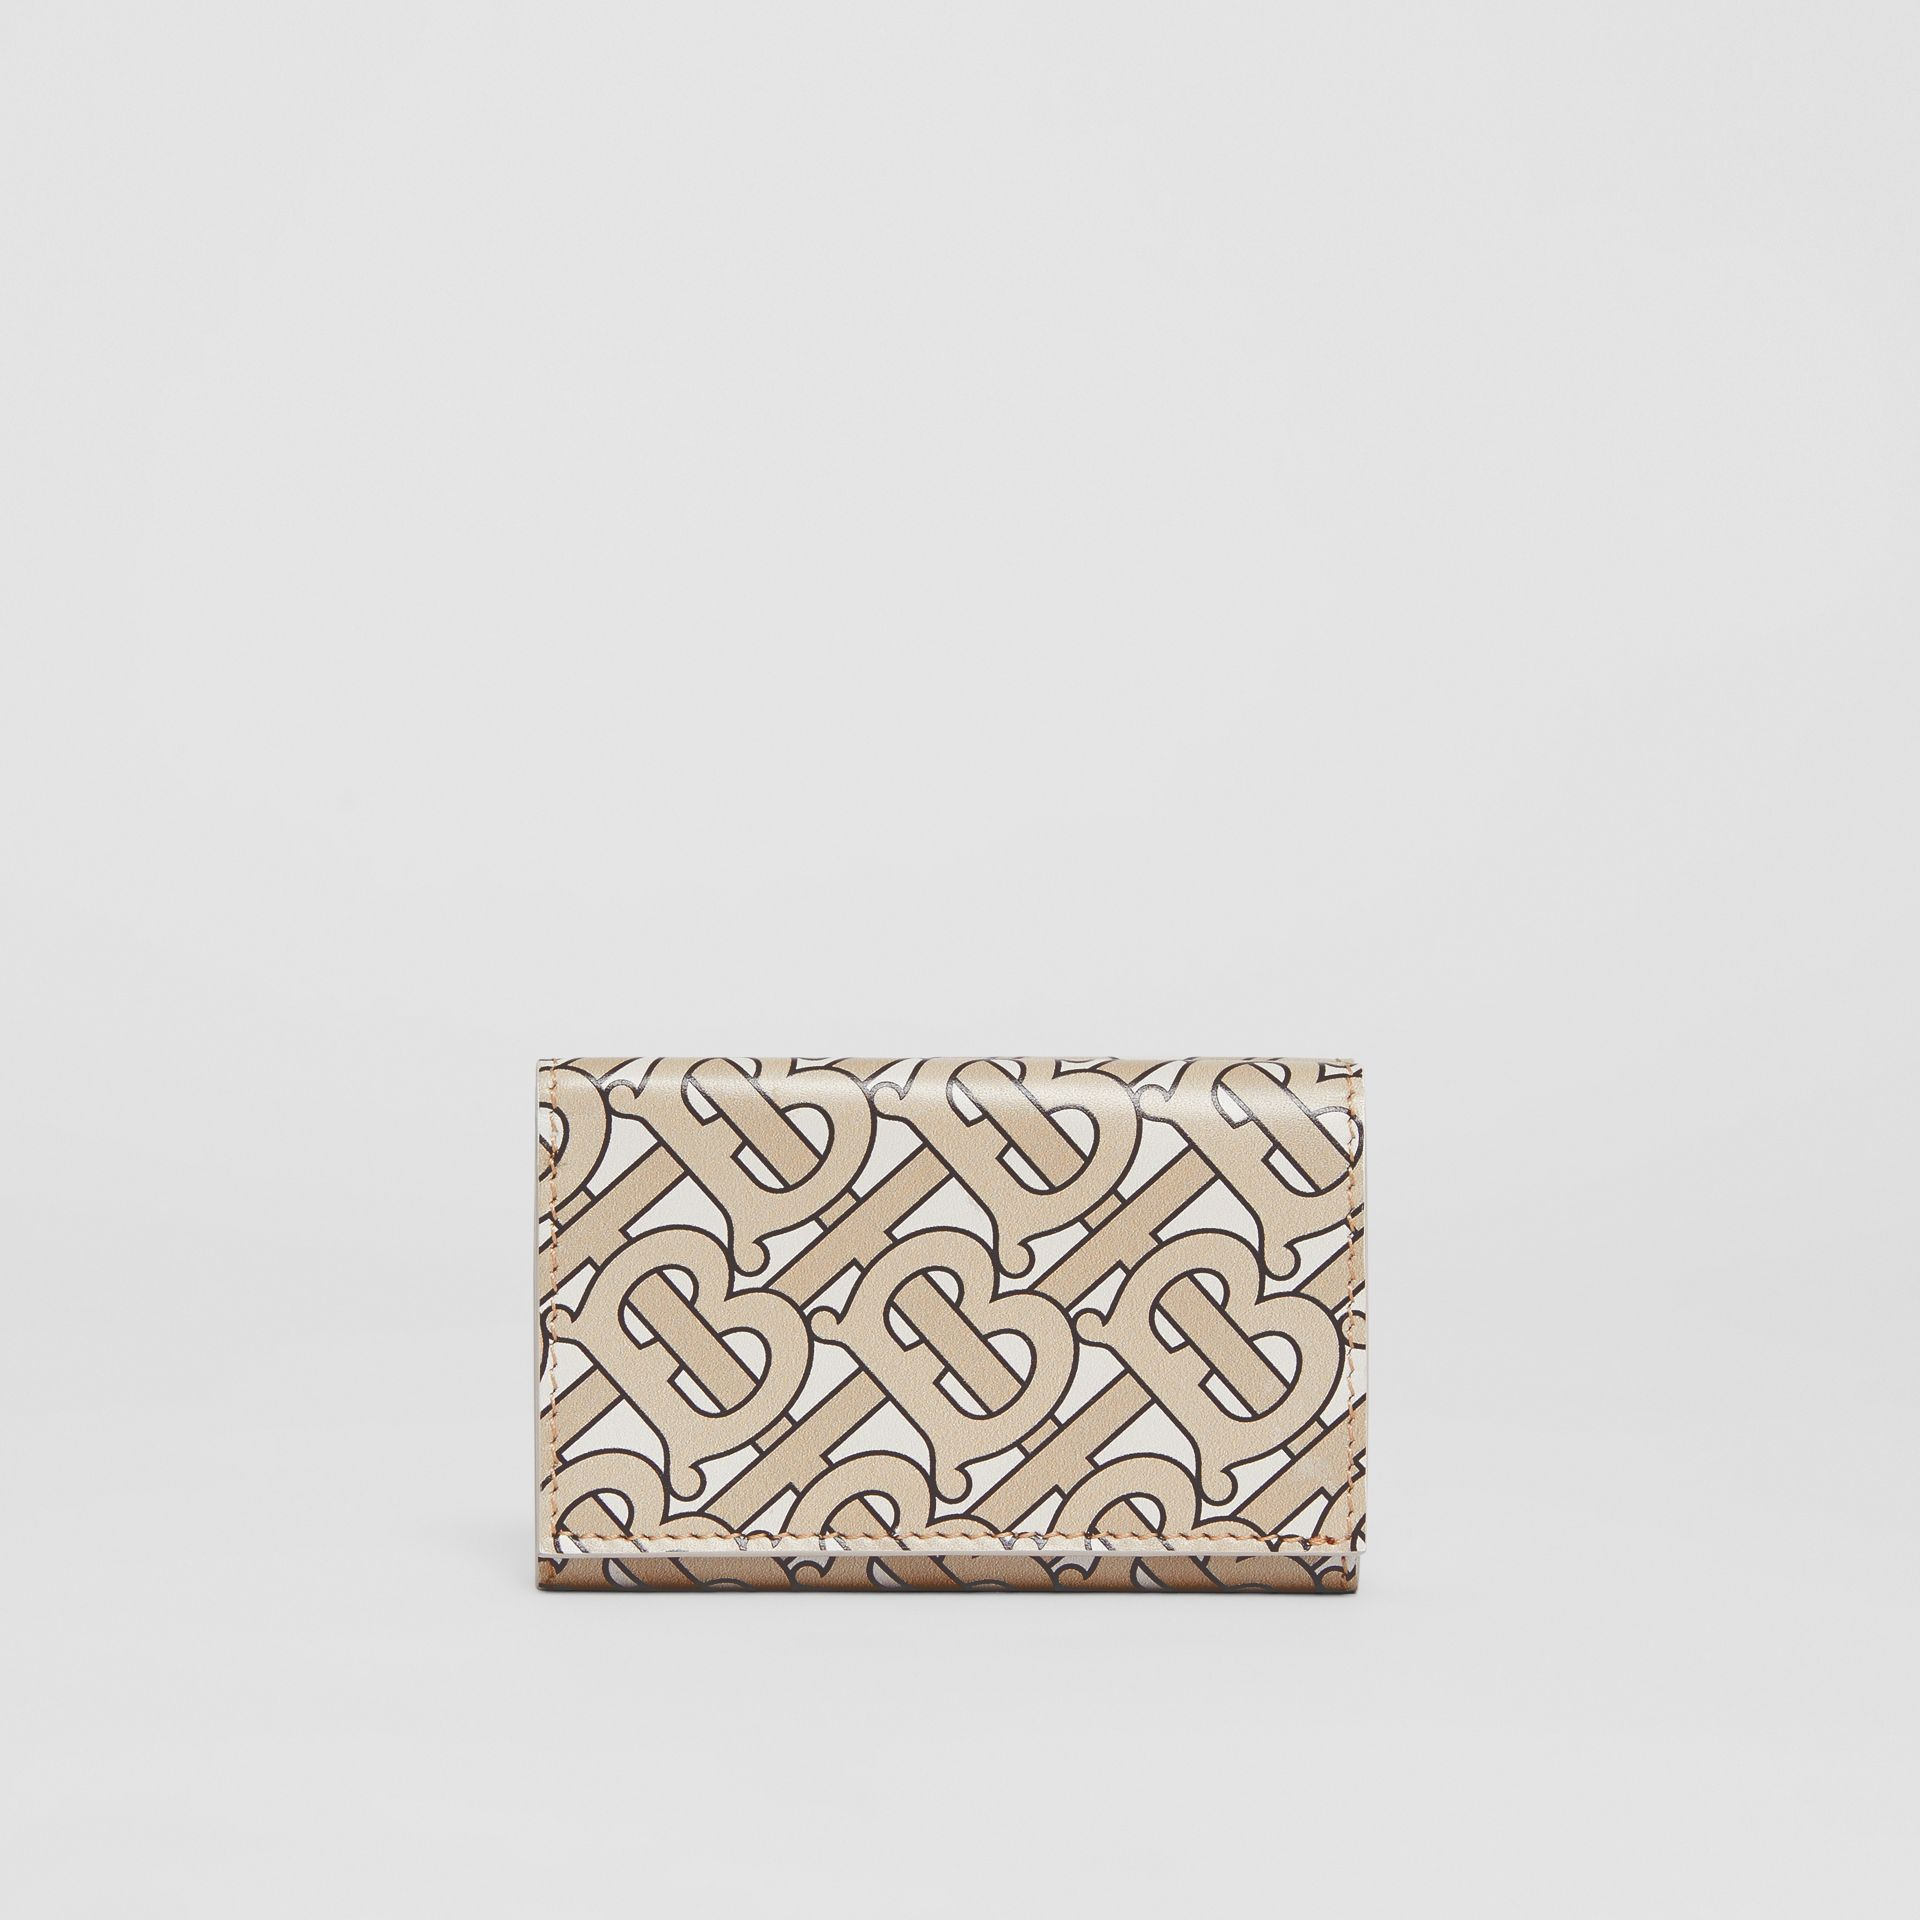 Small Monogram Print Leather Folding Wallet in Beige - Women | Burberry United Kingdom - gallery image 5